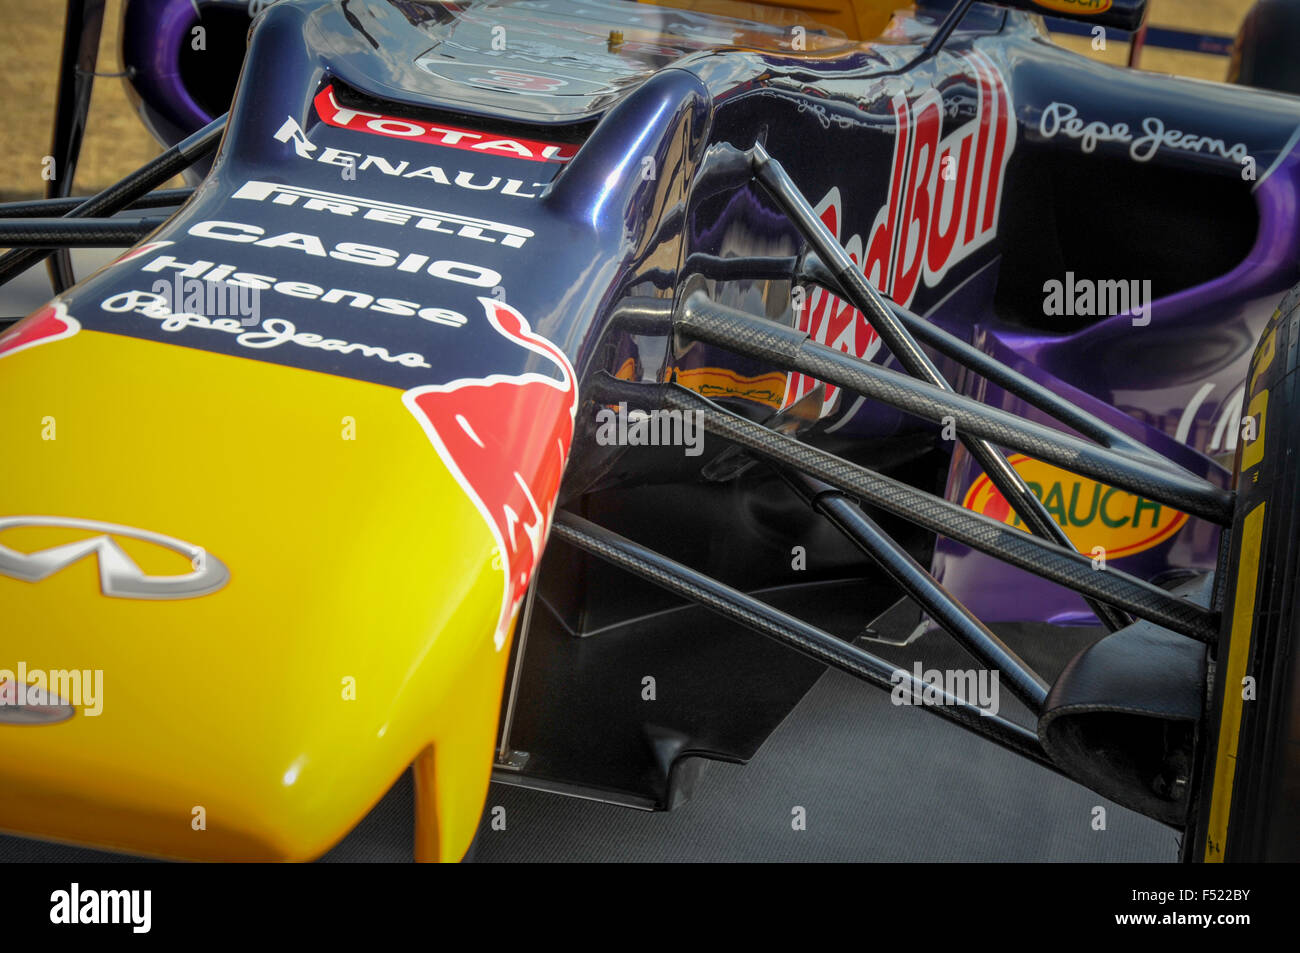 Front of the Red Bull Formula One racing car. - Stock Image